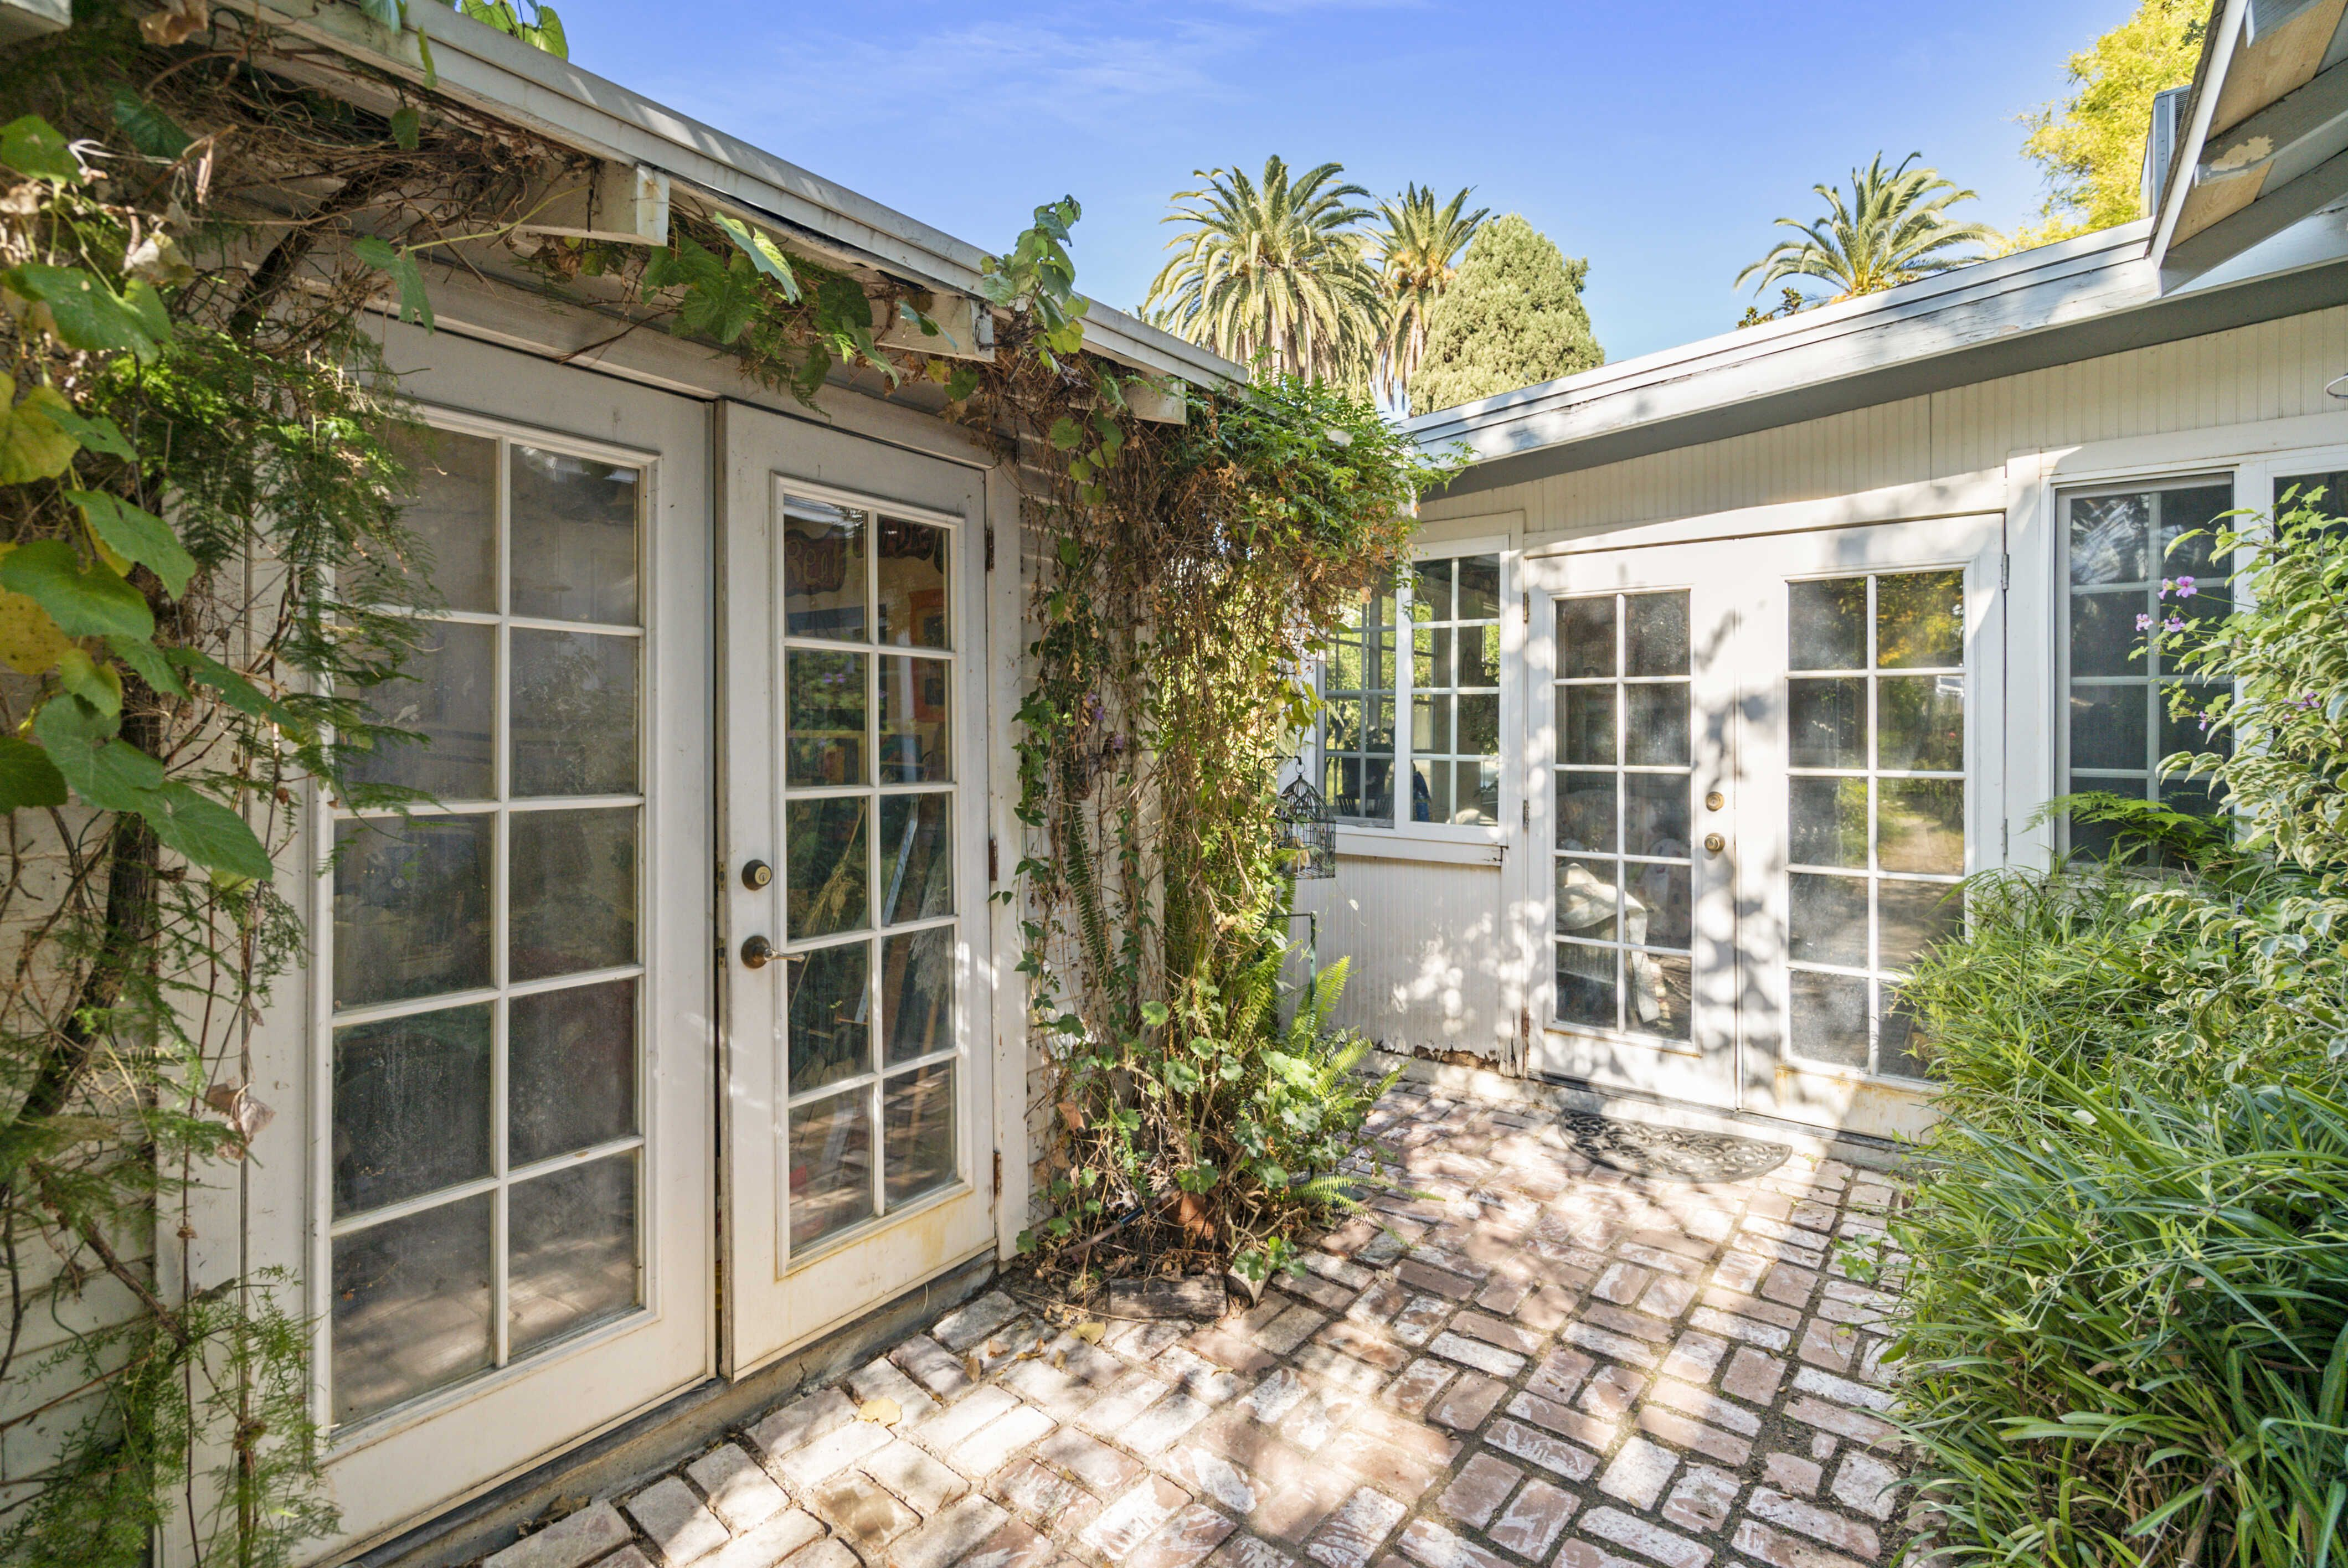 Set of French doors to the right lead to the sun room, and set of doors to the left lead to the converted garage which is now an art studio.